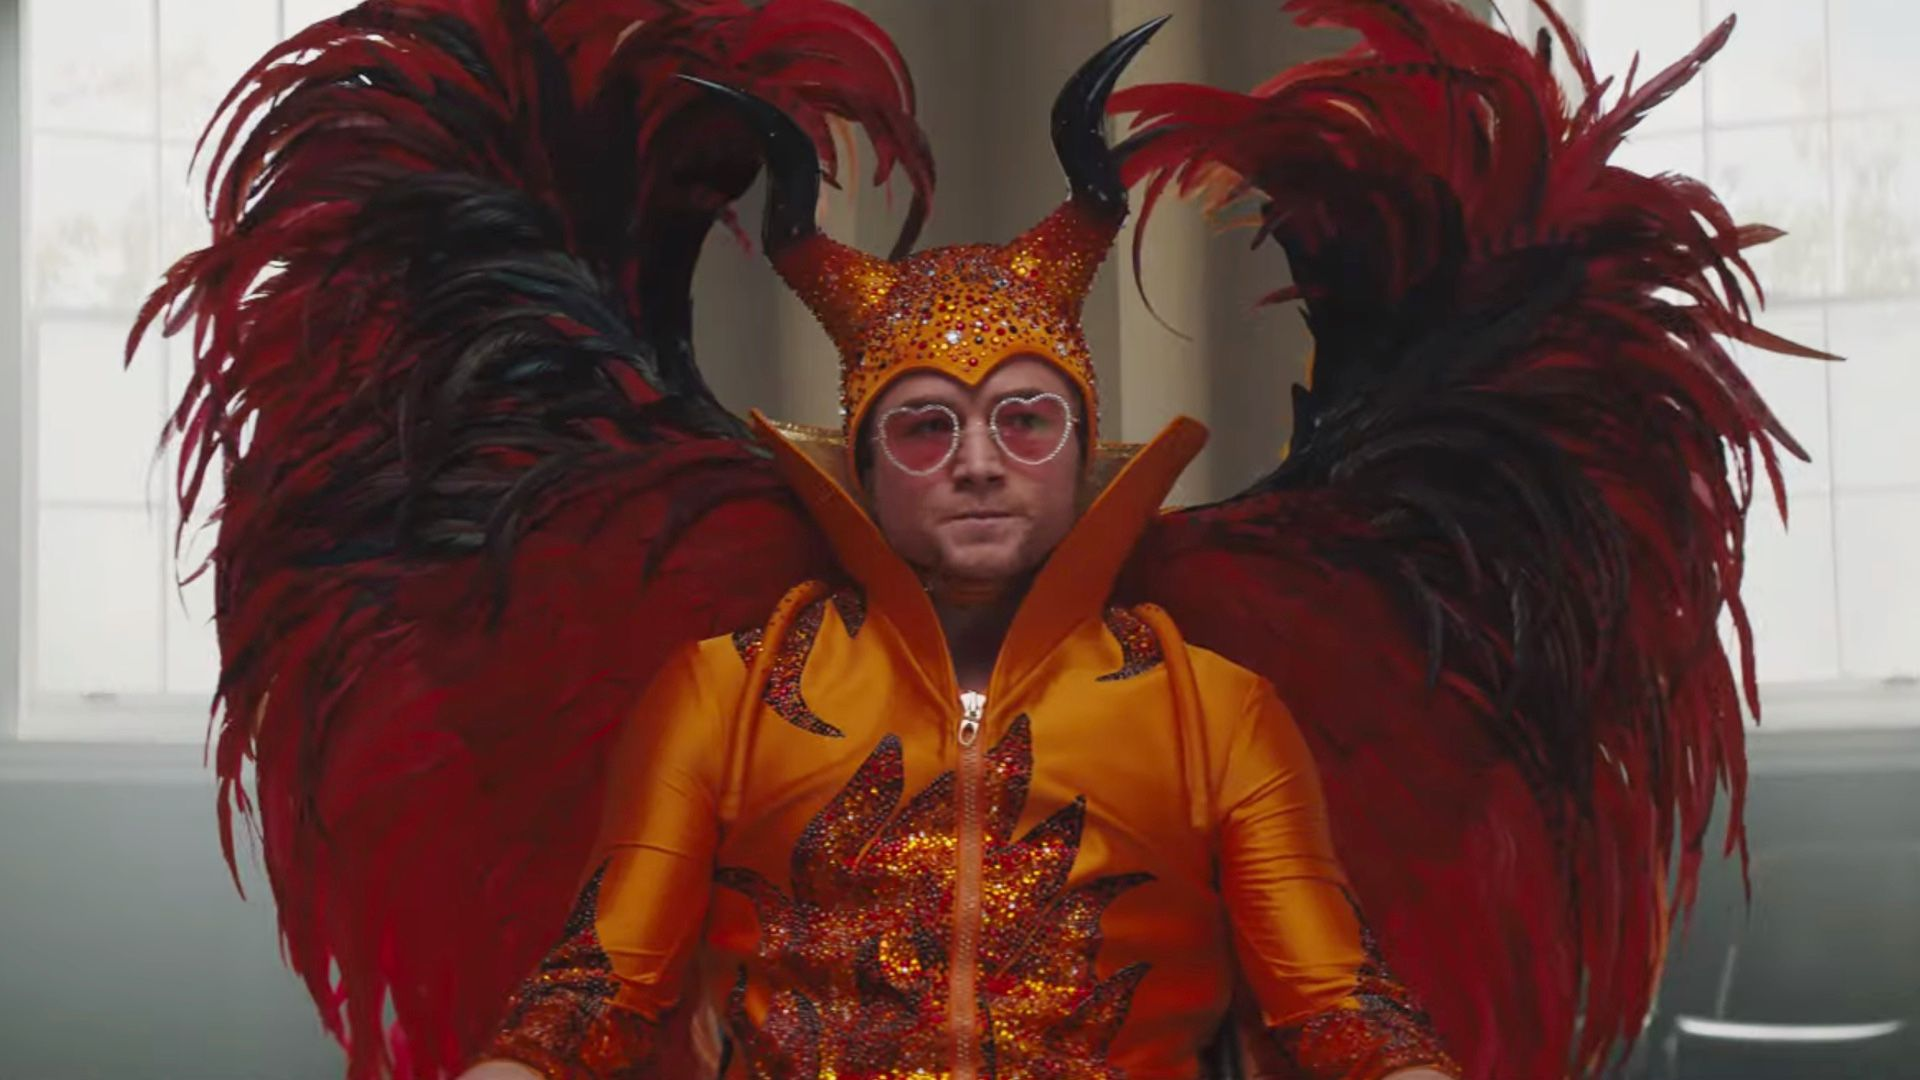 Rocketman (2019) Red and Yellow Devil Dress Outfit